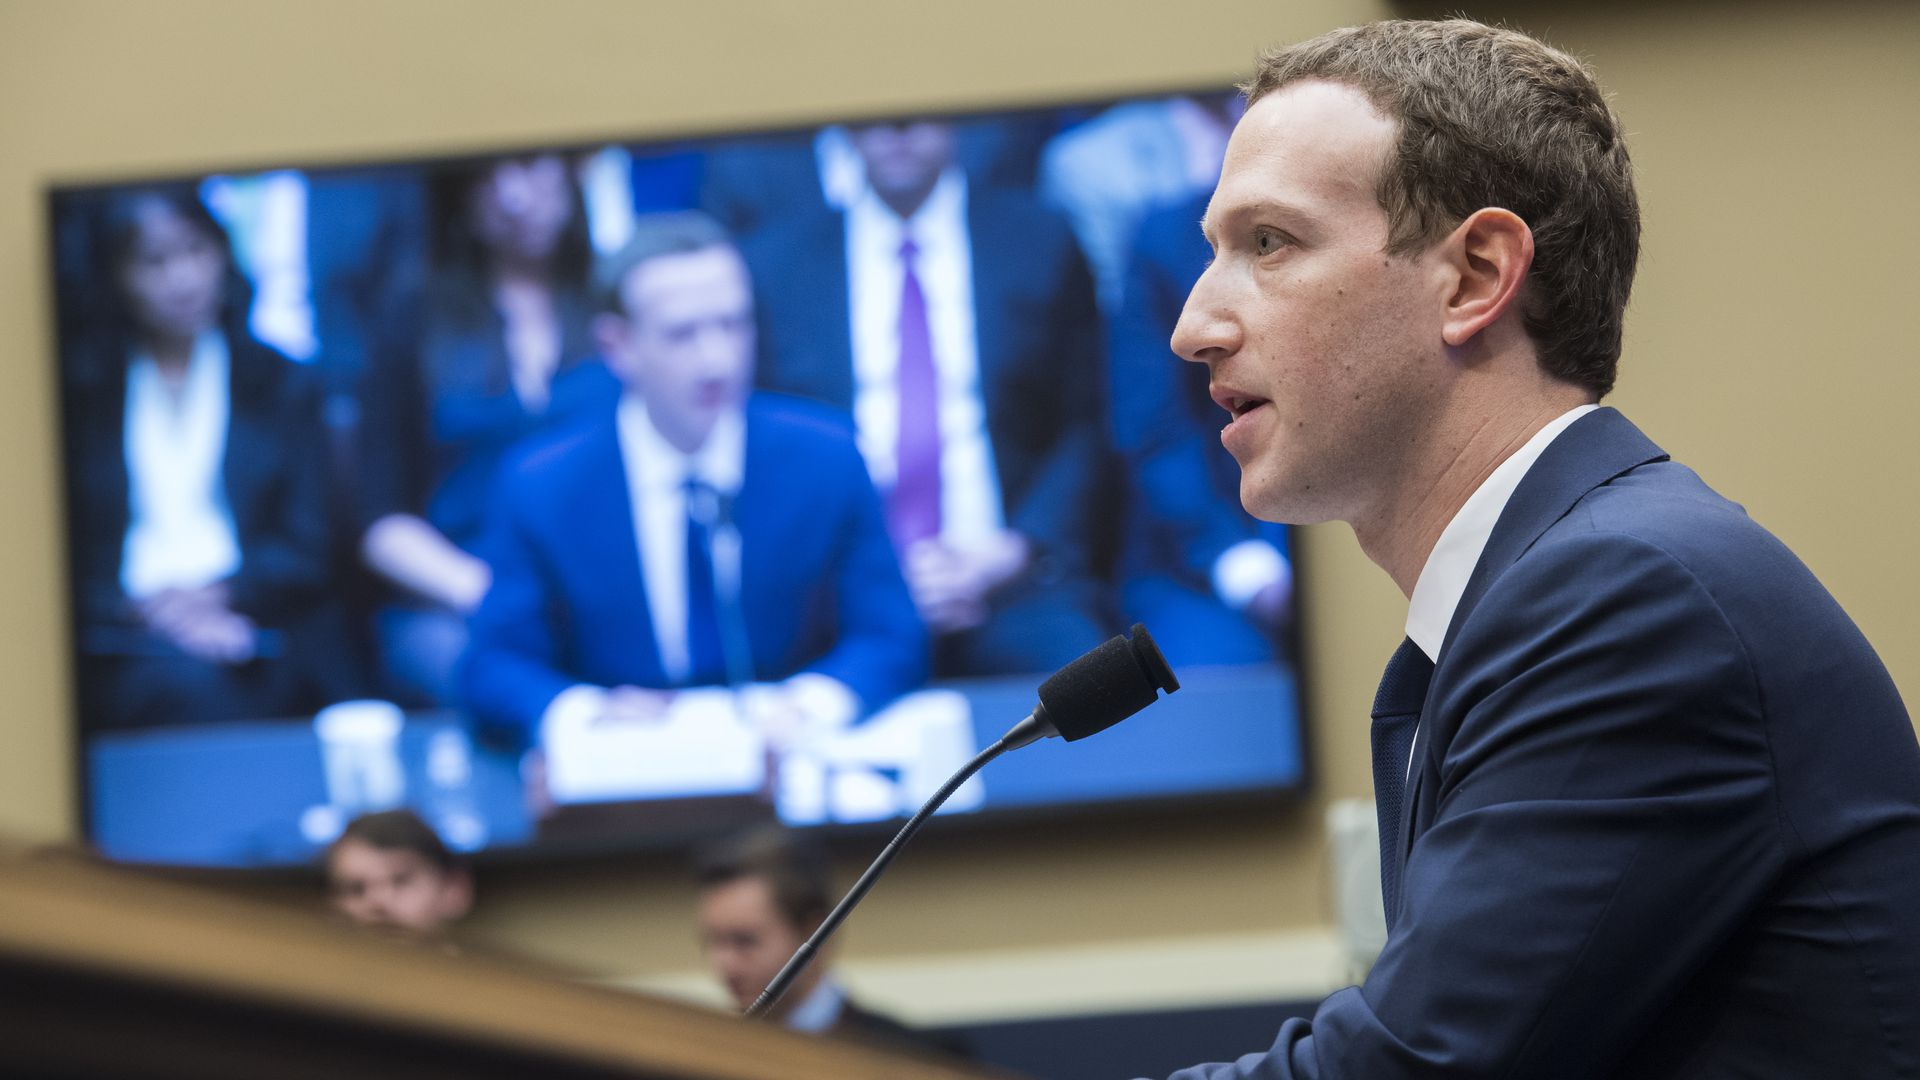 Facebook CEO Mark Zuckerberg testifies before Congress in April.